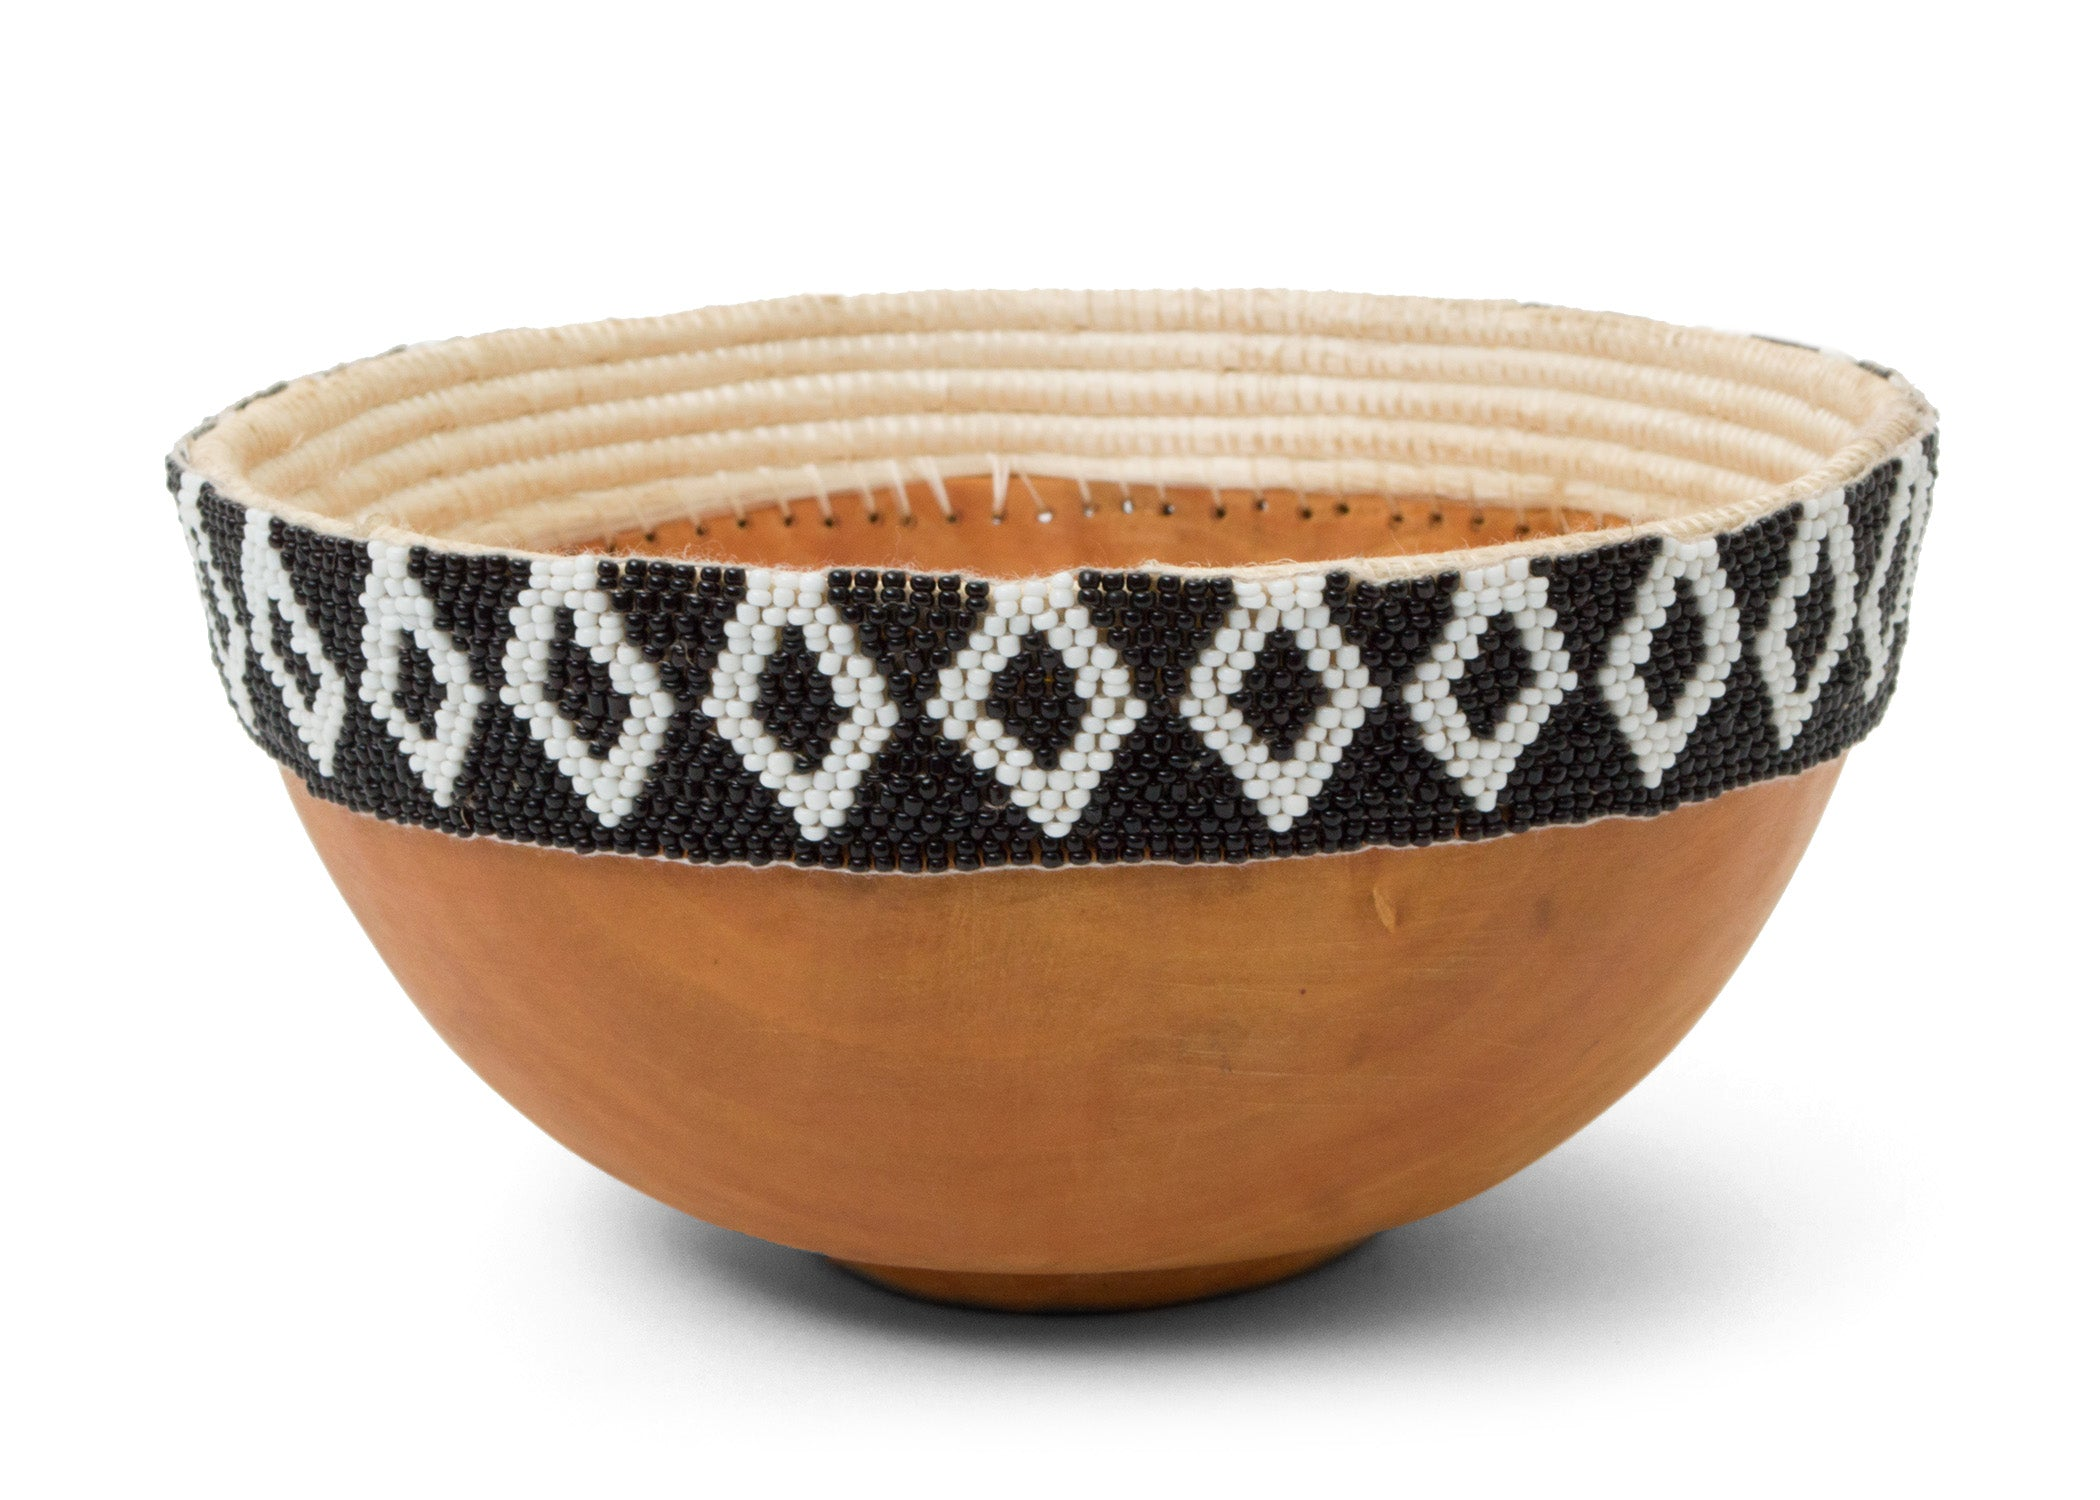 Black + White Beaded Wooden Bowl I - KAZI - Artisan made high quality home decor and wall art